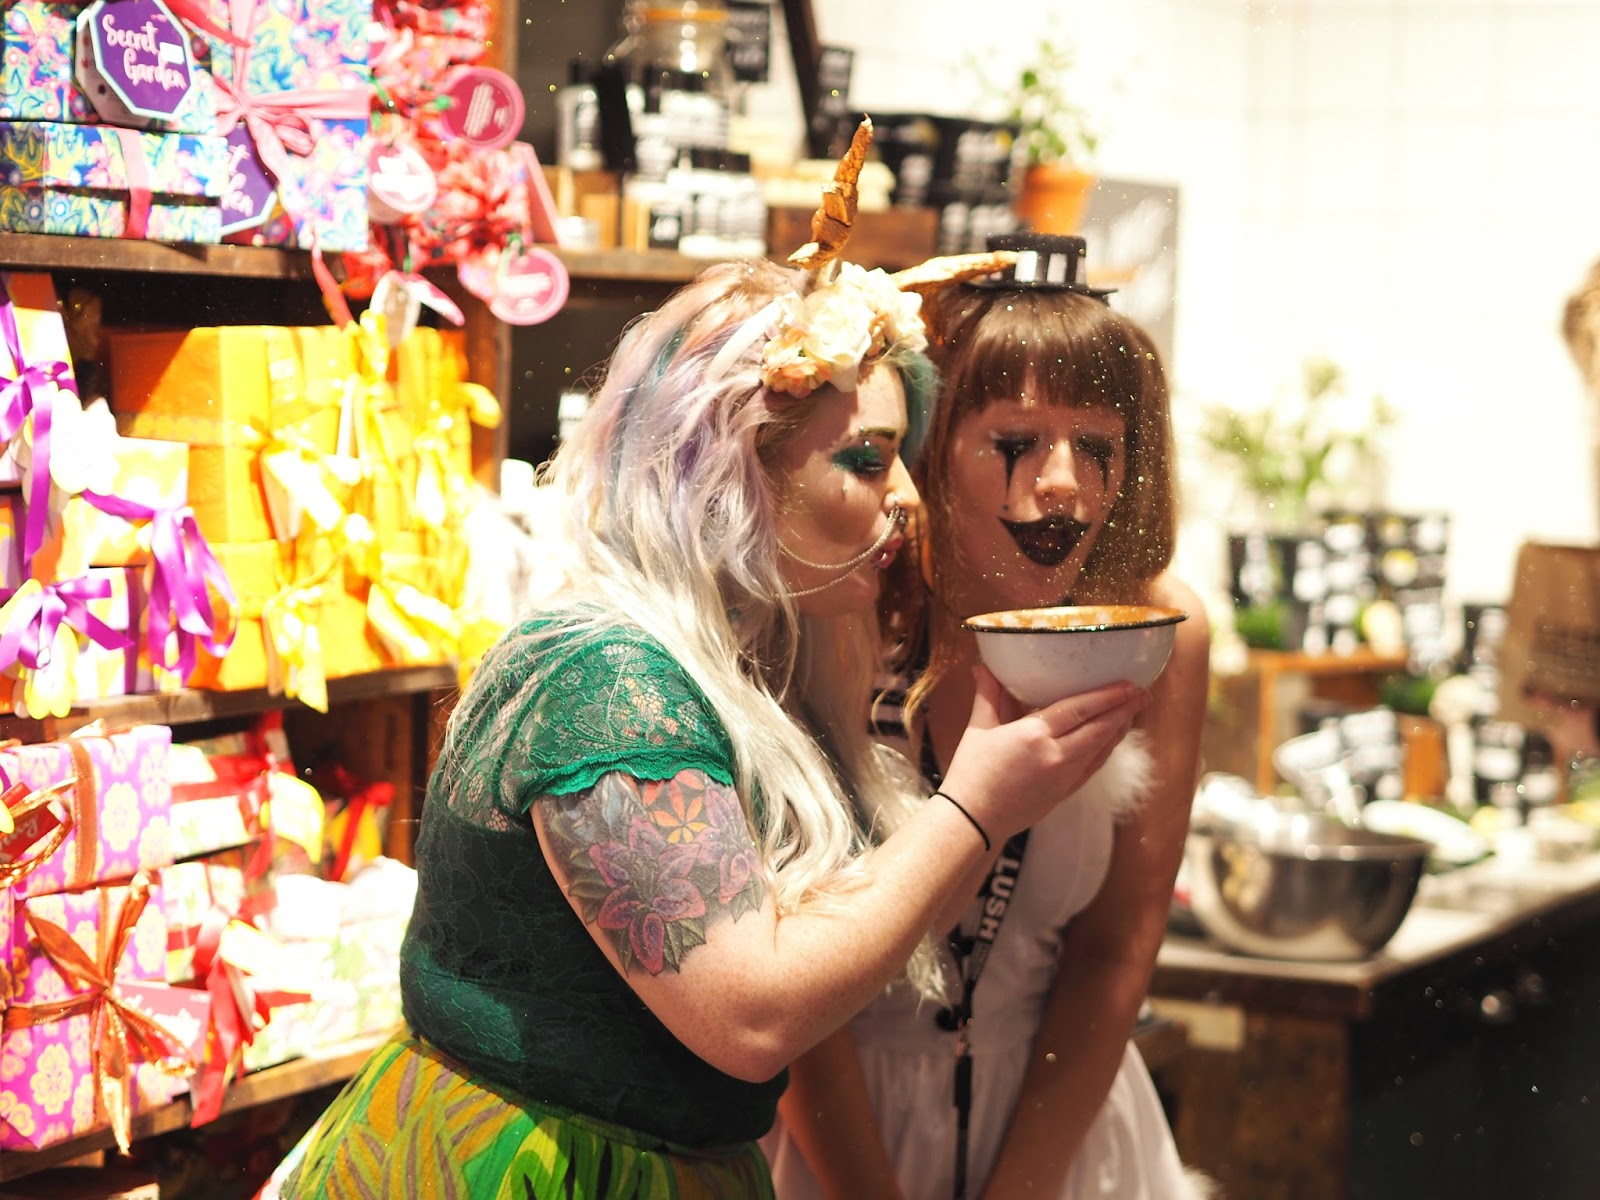 Lush Portsmouth Blogger Event, Katie Kirk Loves, UK Blogger, Beauty Blogger, Beauty Influencer, Lush Halloween 2017, Lush Christmas 2017, Lush Cosmetics, Lush UK, UK Beauty Blogger, Sussex Blogger, Lush Bath Bombs, Skincare Blogger, Lush Store Event, Lush Portmouth